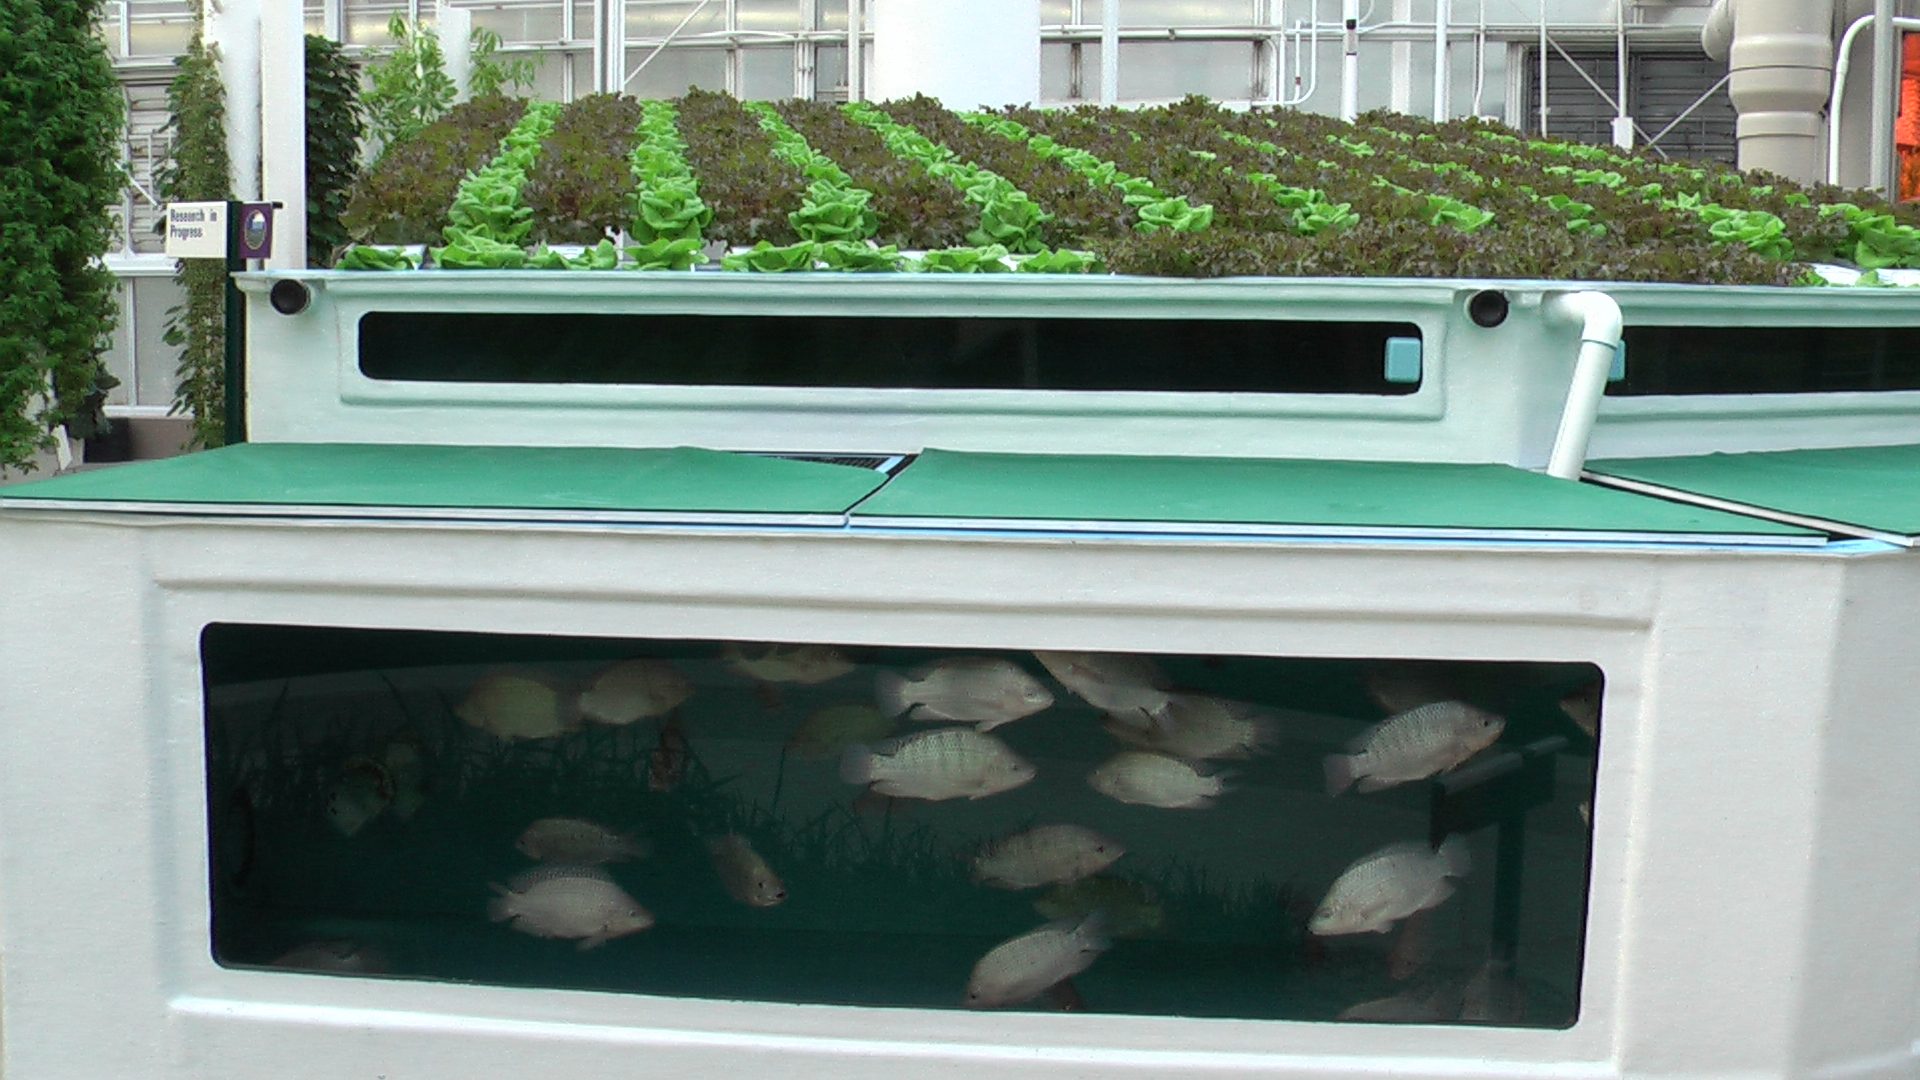 Aquaponics cold water fish for Fish tank hydroponic garden